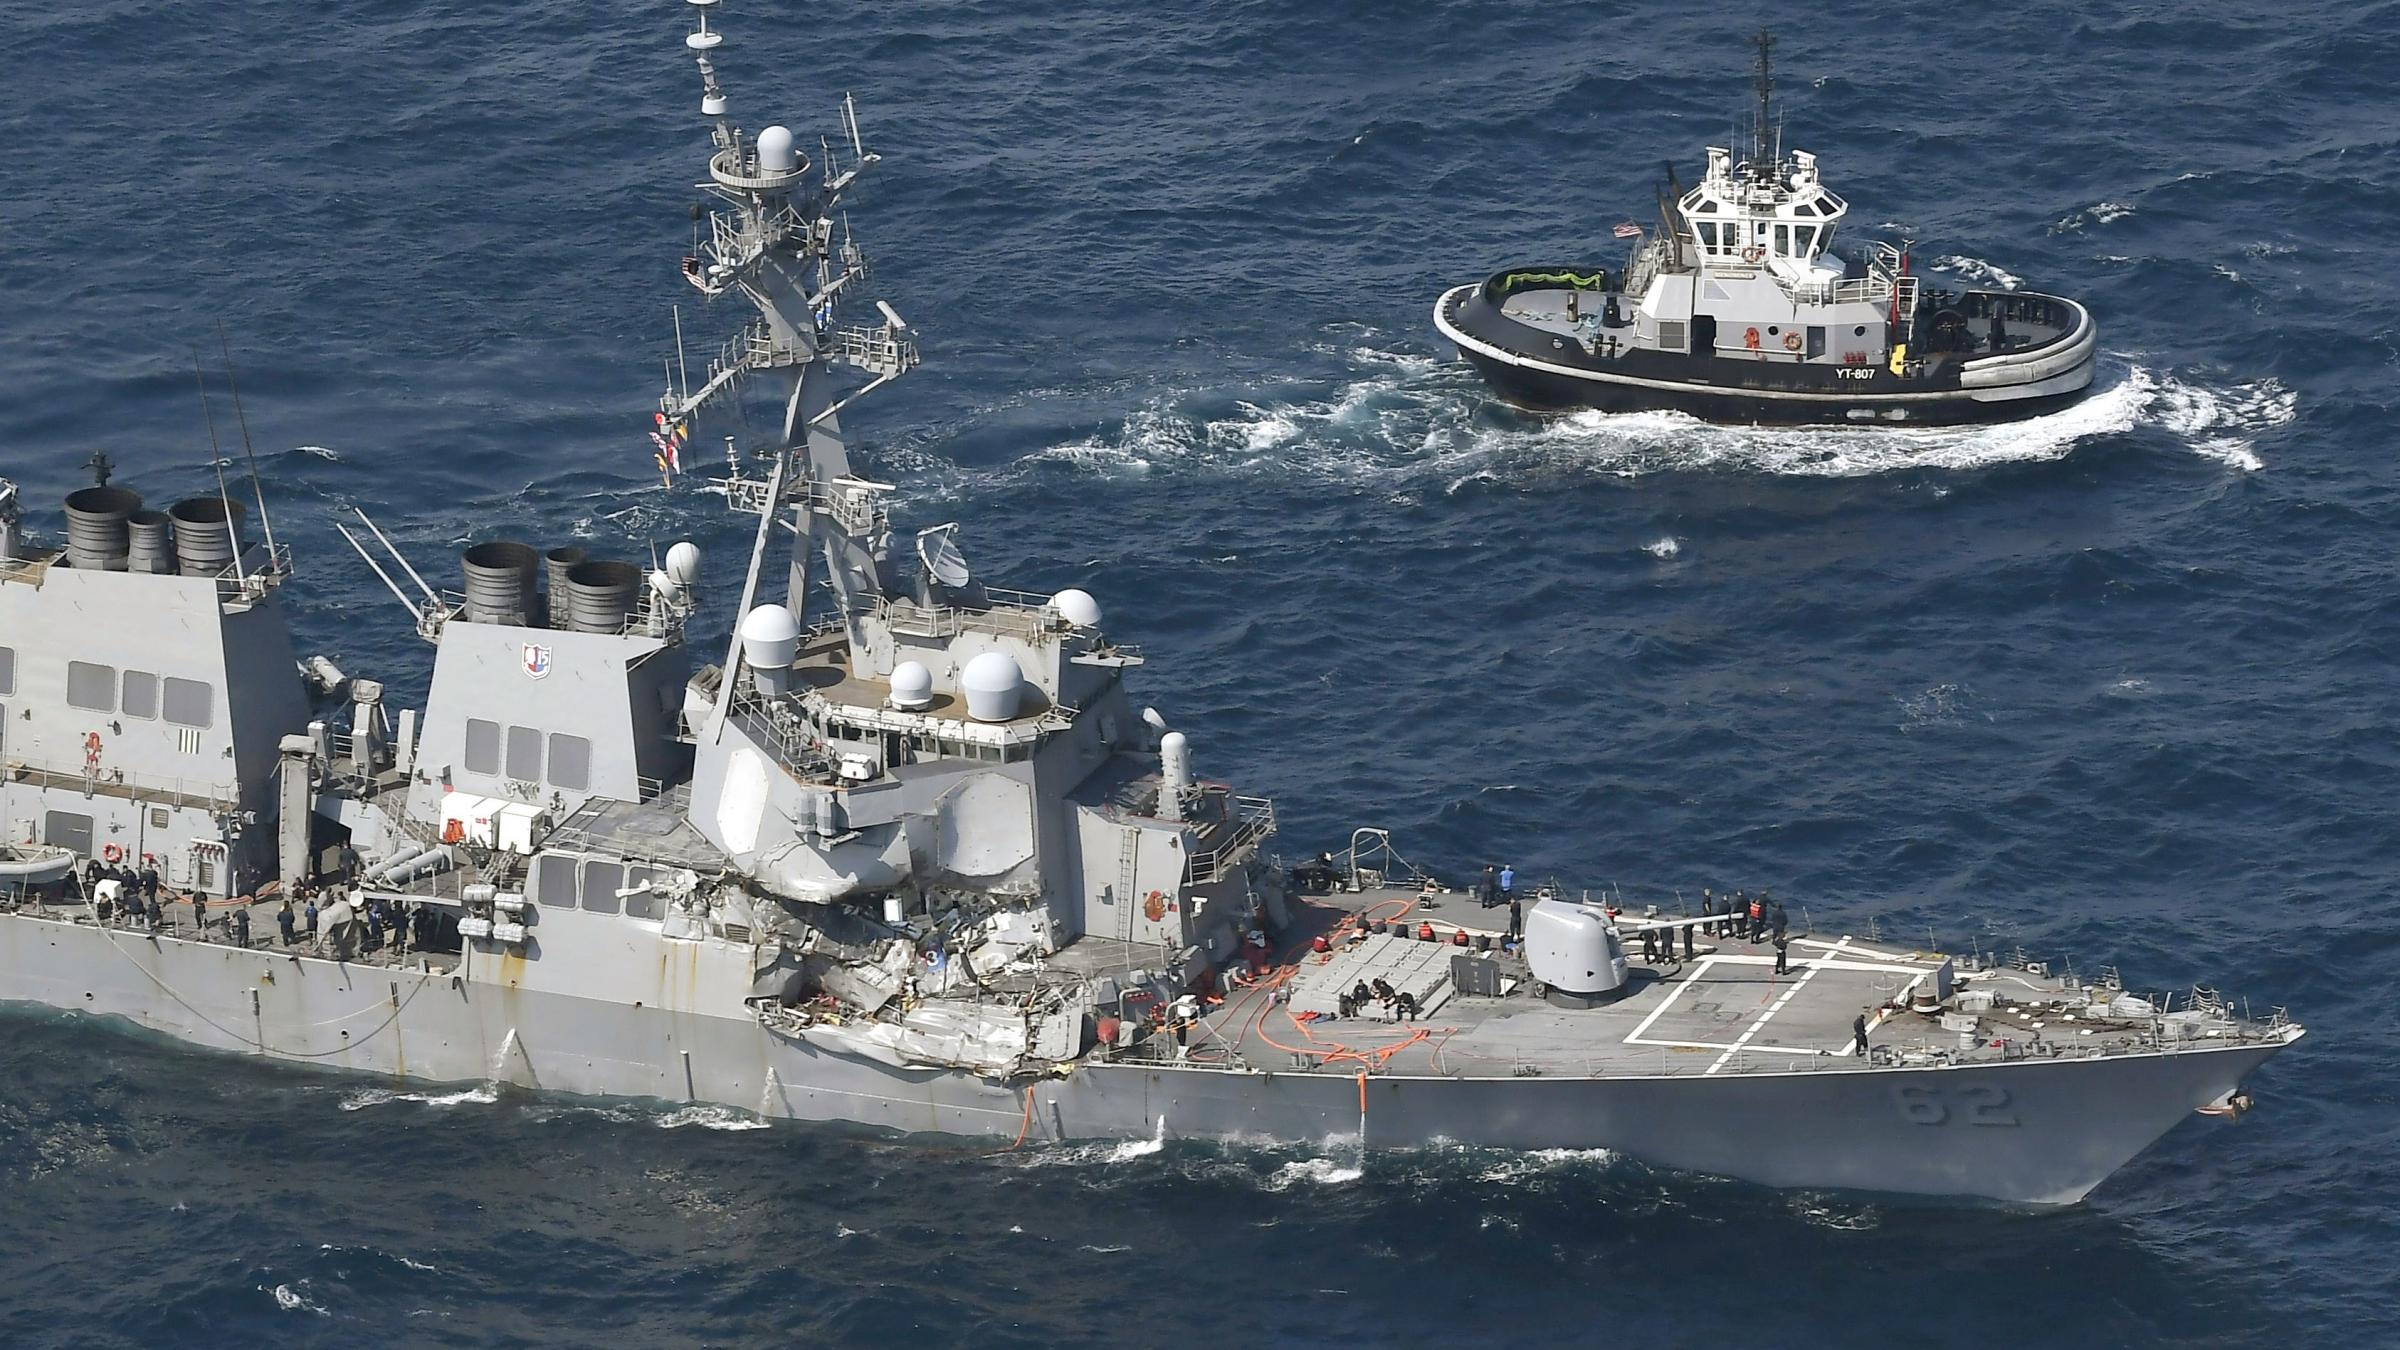 US Sailors Missing After Navy Destroyer's Collision With Merchant Vessel